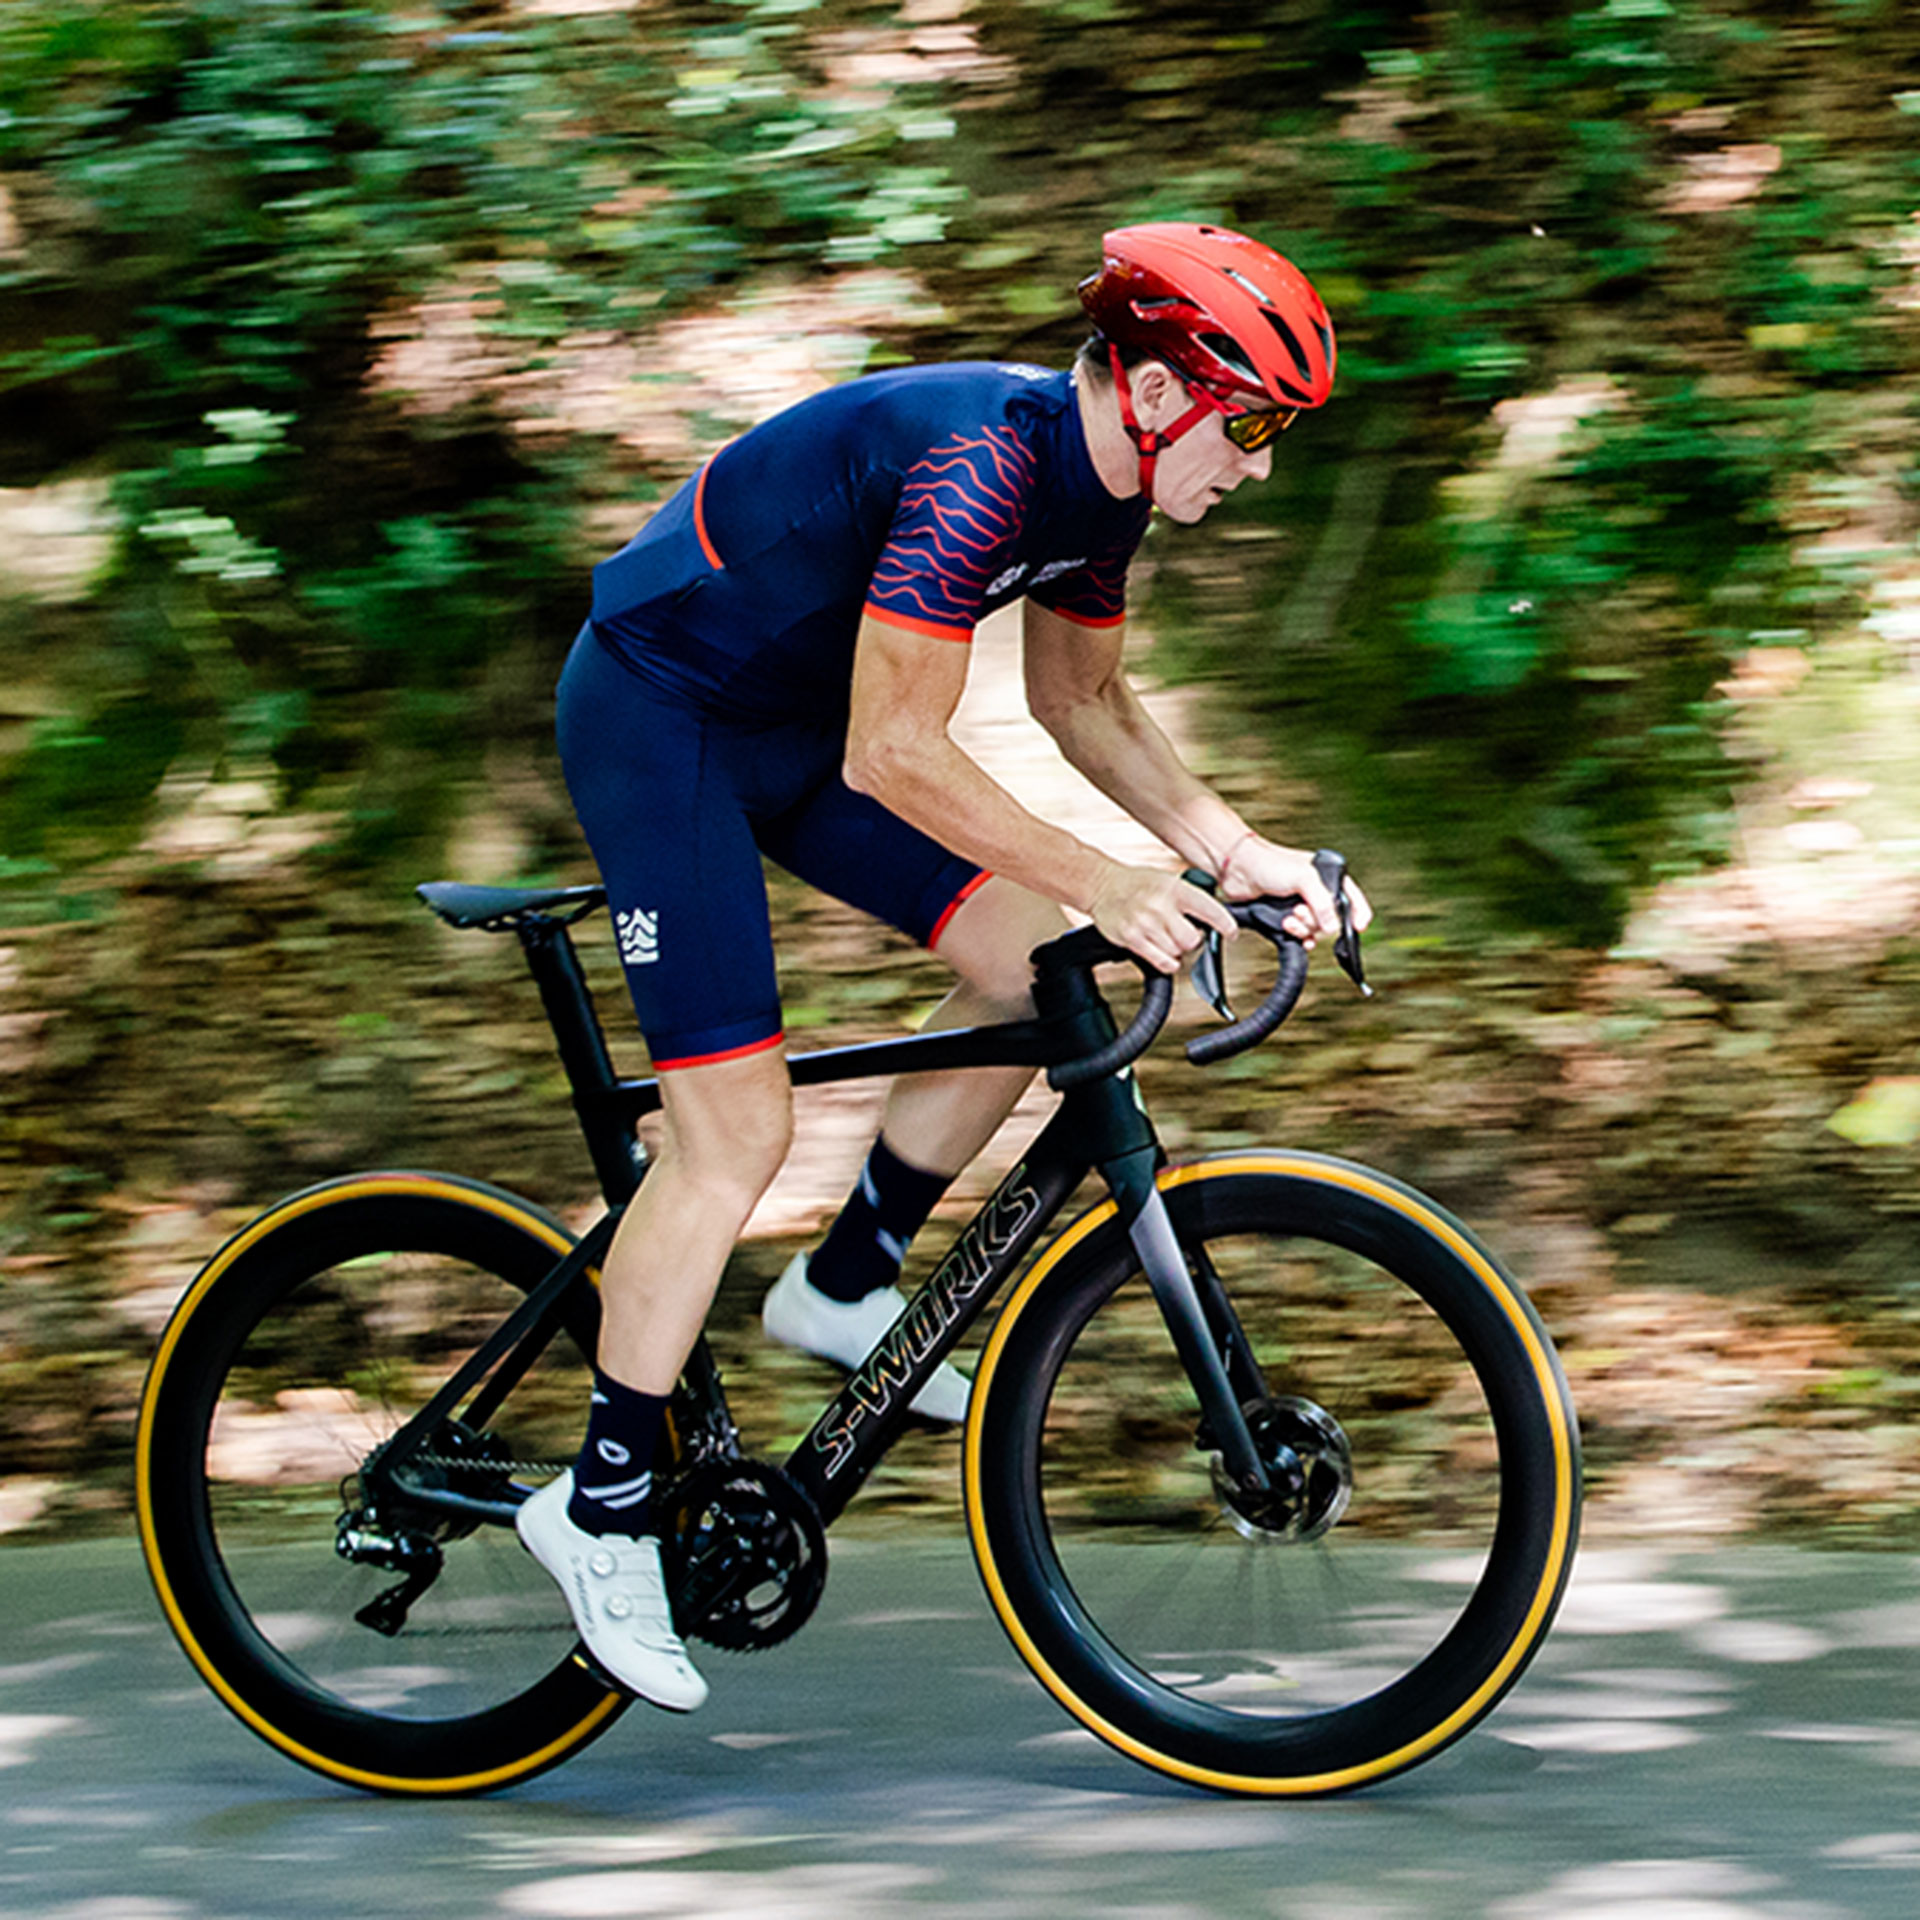 matt stephens riding the specialized s-works venge road bike 2019